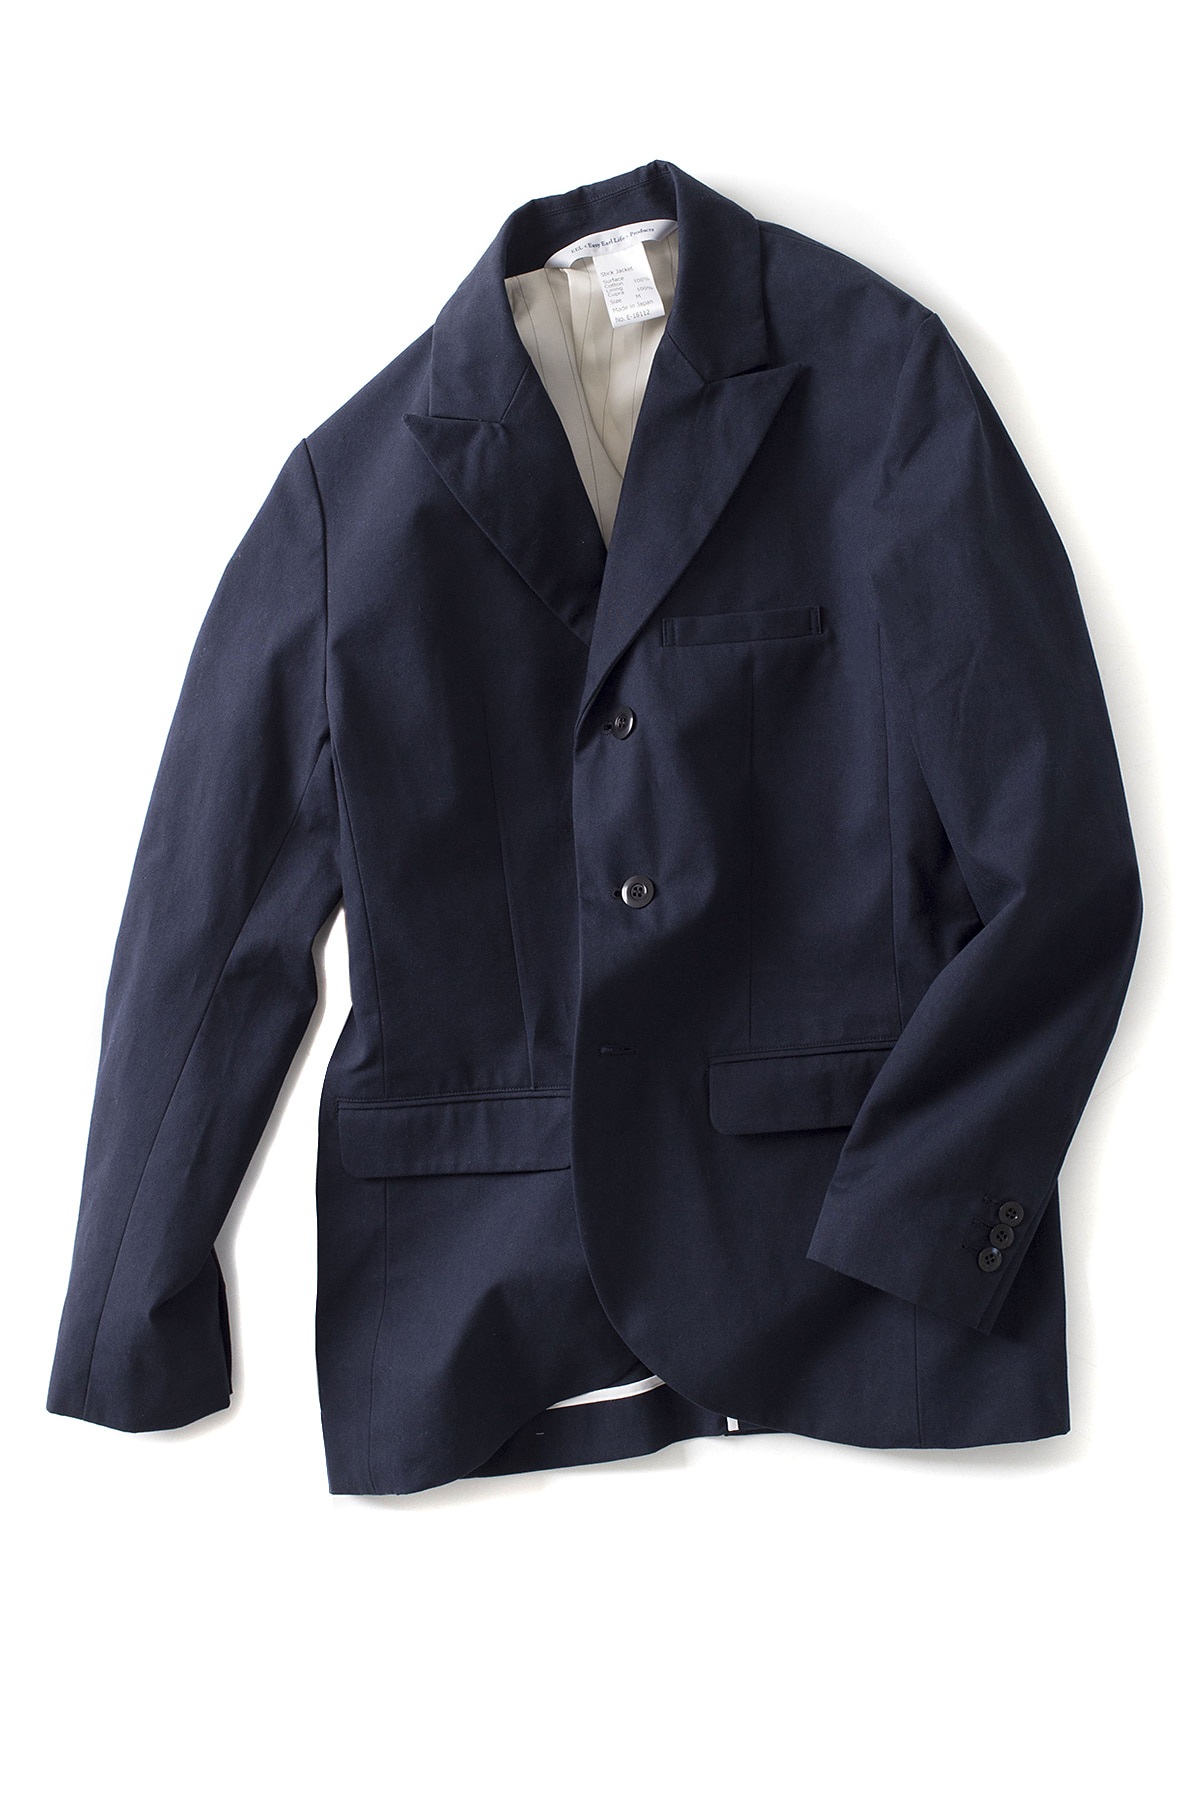 EEL : Stick Jacket (Navy)